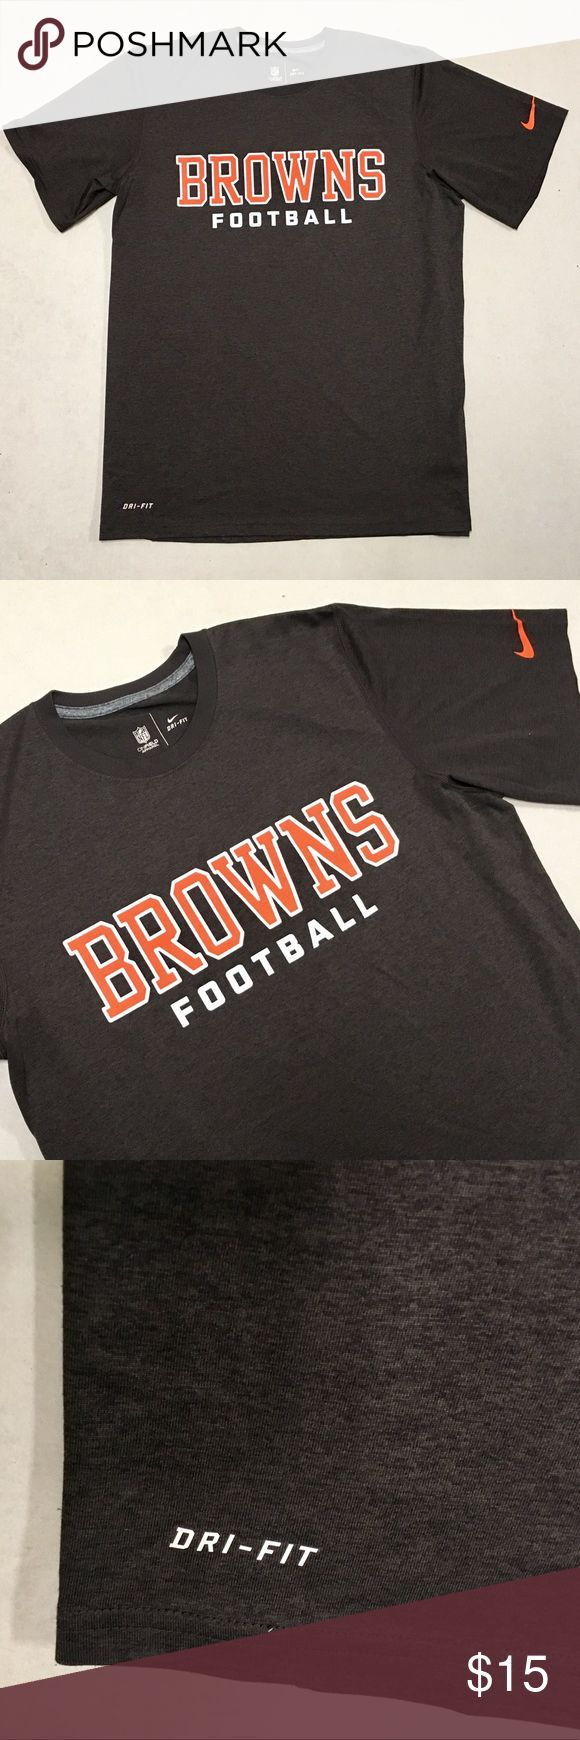 Cleveland Browns - Nike NFL Onfield Men's T-shirt Cleveland Browns Nike Dri-Fit NFL Onfield T-shirt   Size Men's Medium   New without tags!!  🏈🏈🏈 Nike Shirts Tees - Short Sleeve